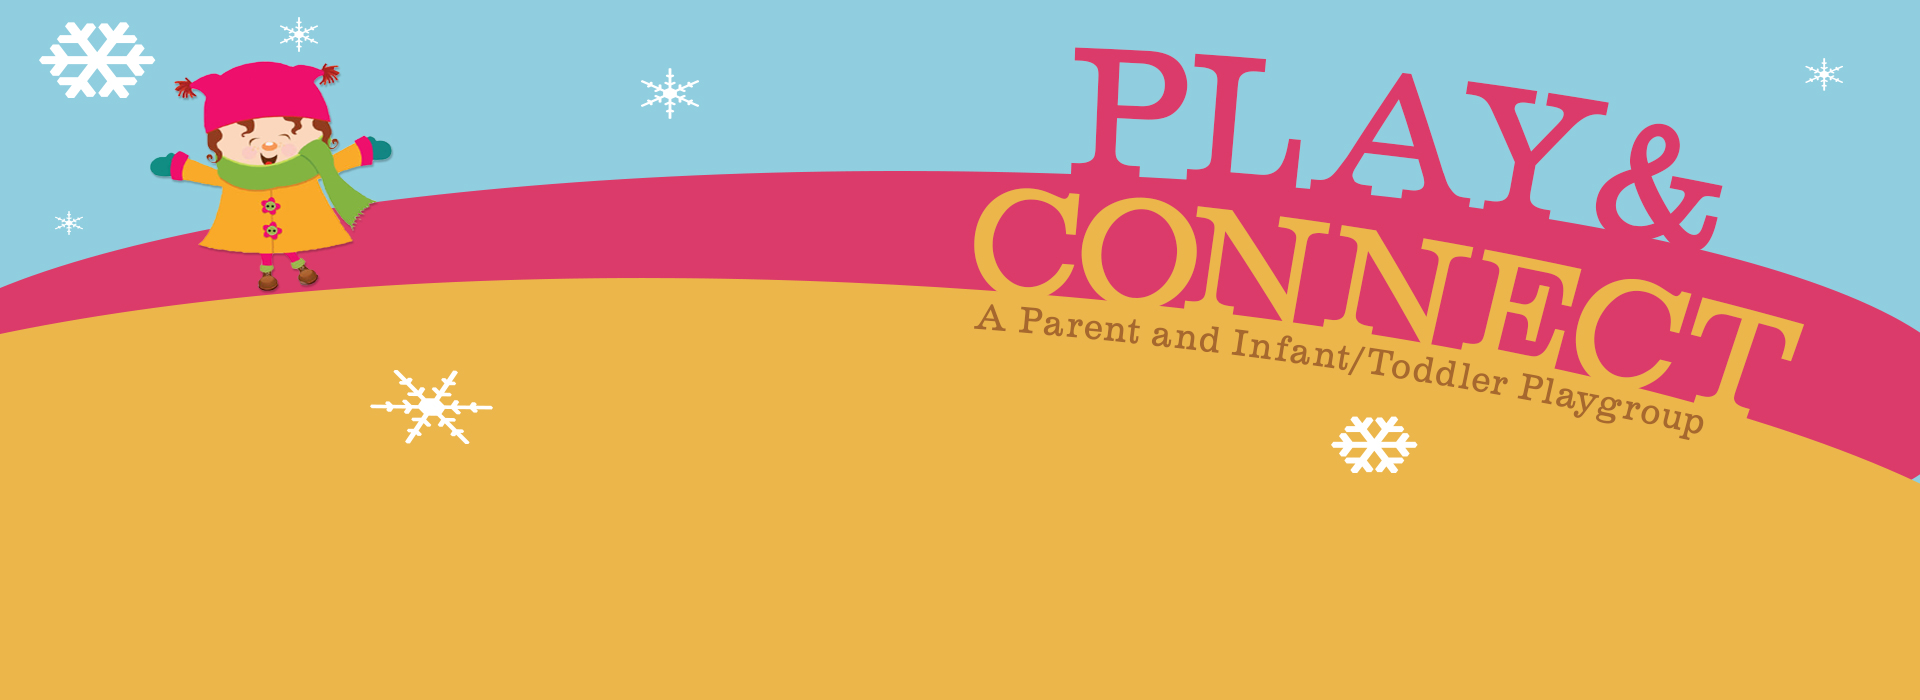 play-and-connect-banner